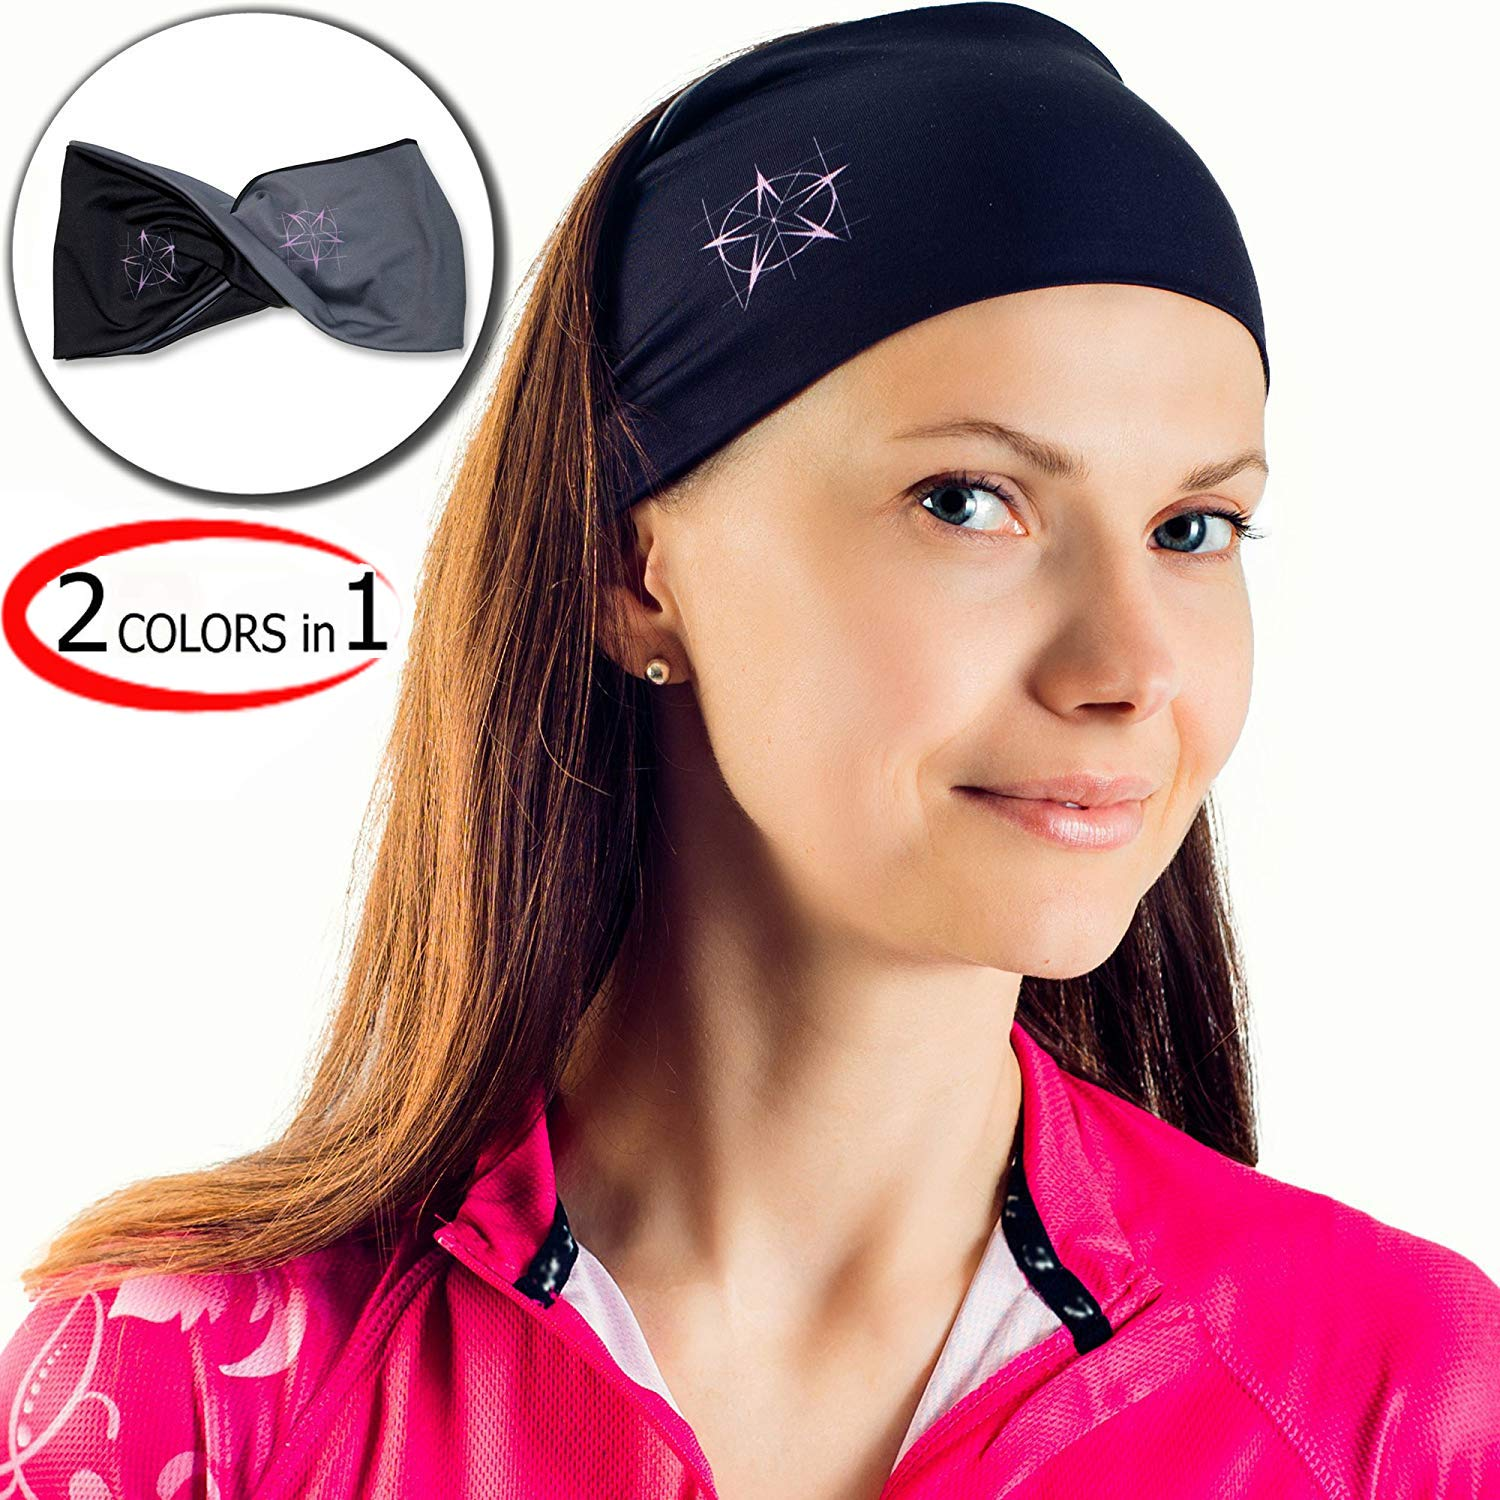 Sports Headband For Men & Women- For Workout, Yoga, Traveling, Everyday Use & So On- Stretchy Sweatband- Fashionable Design- Two-sided: Black & Grey